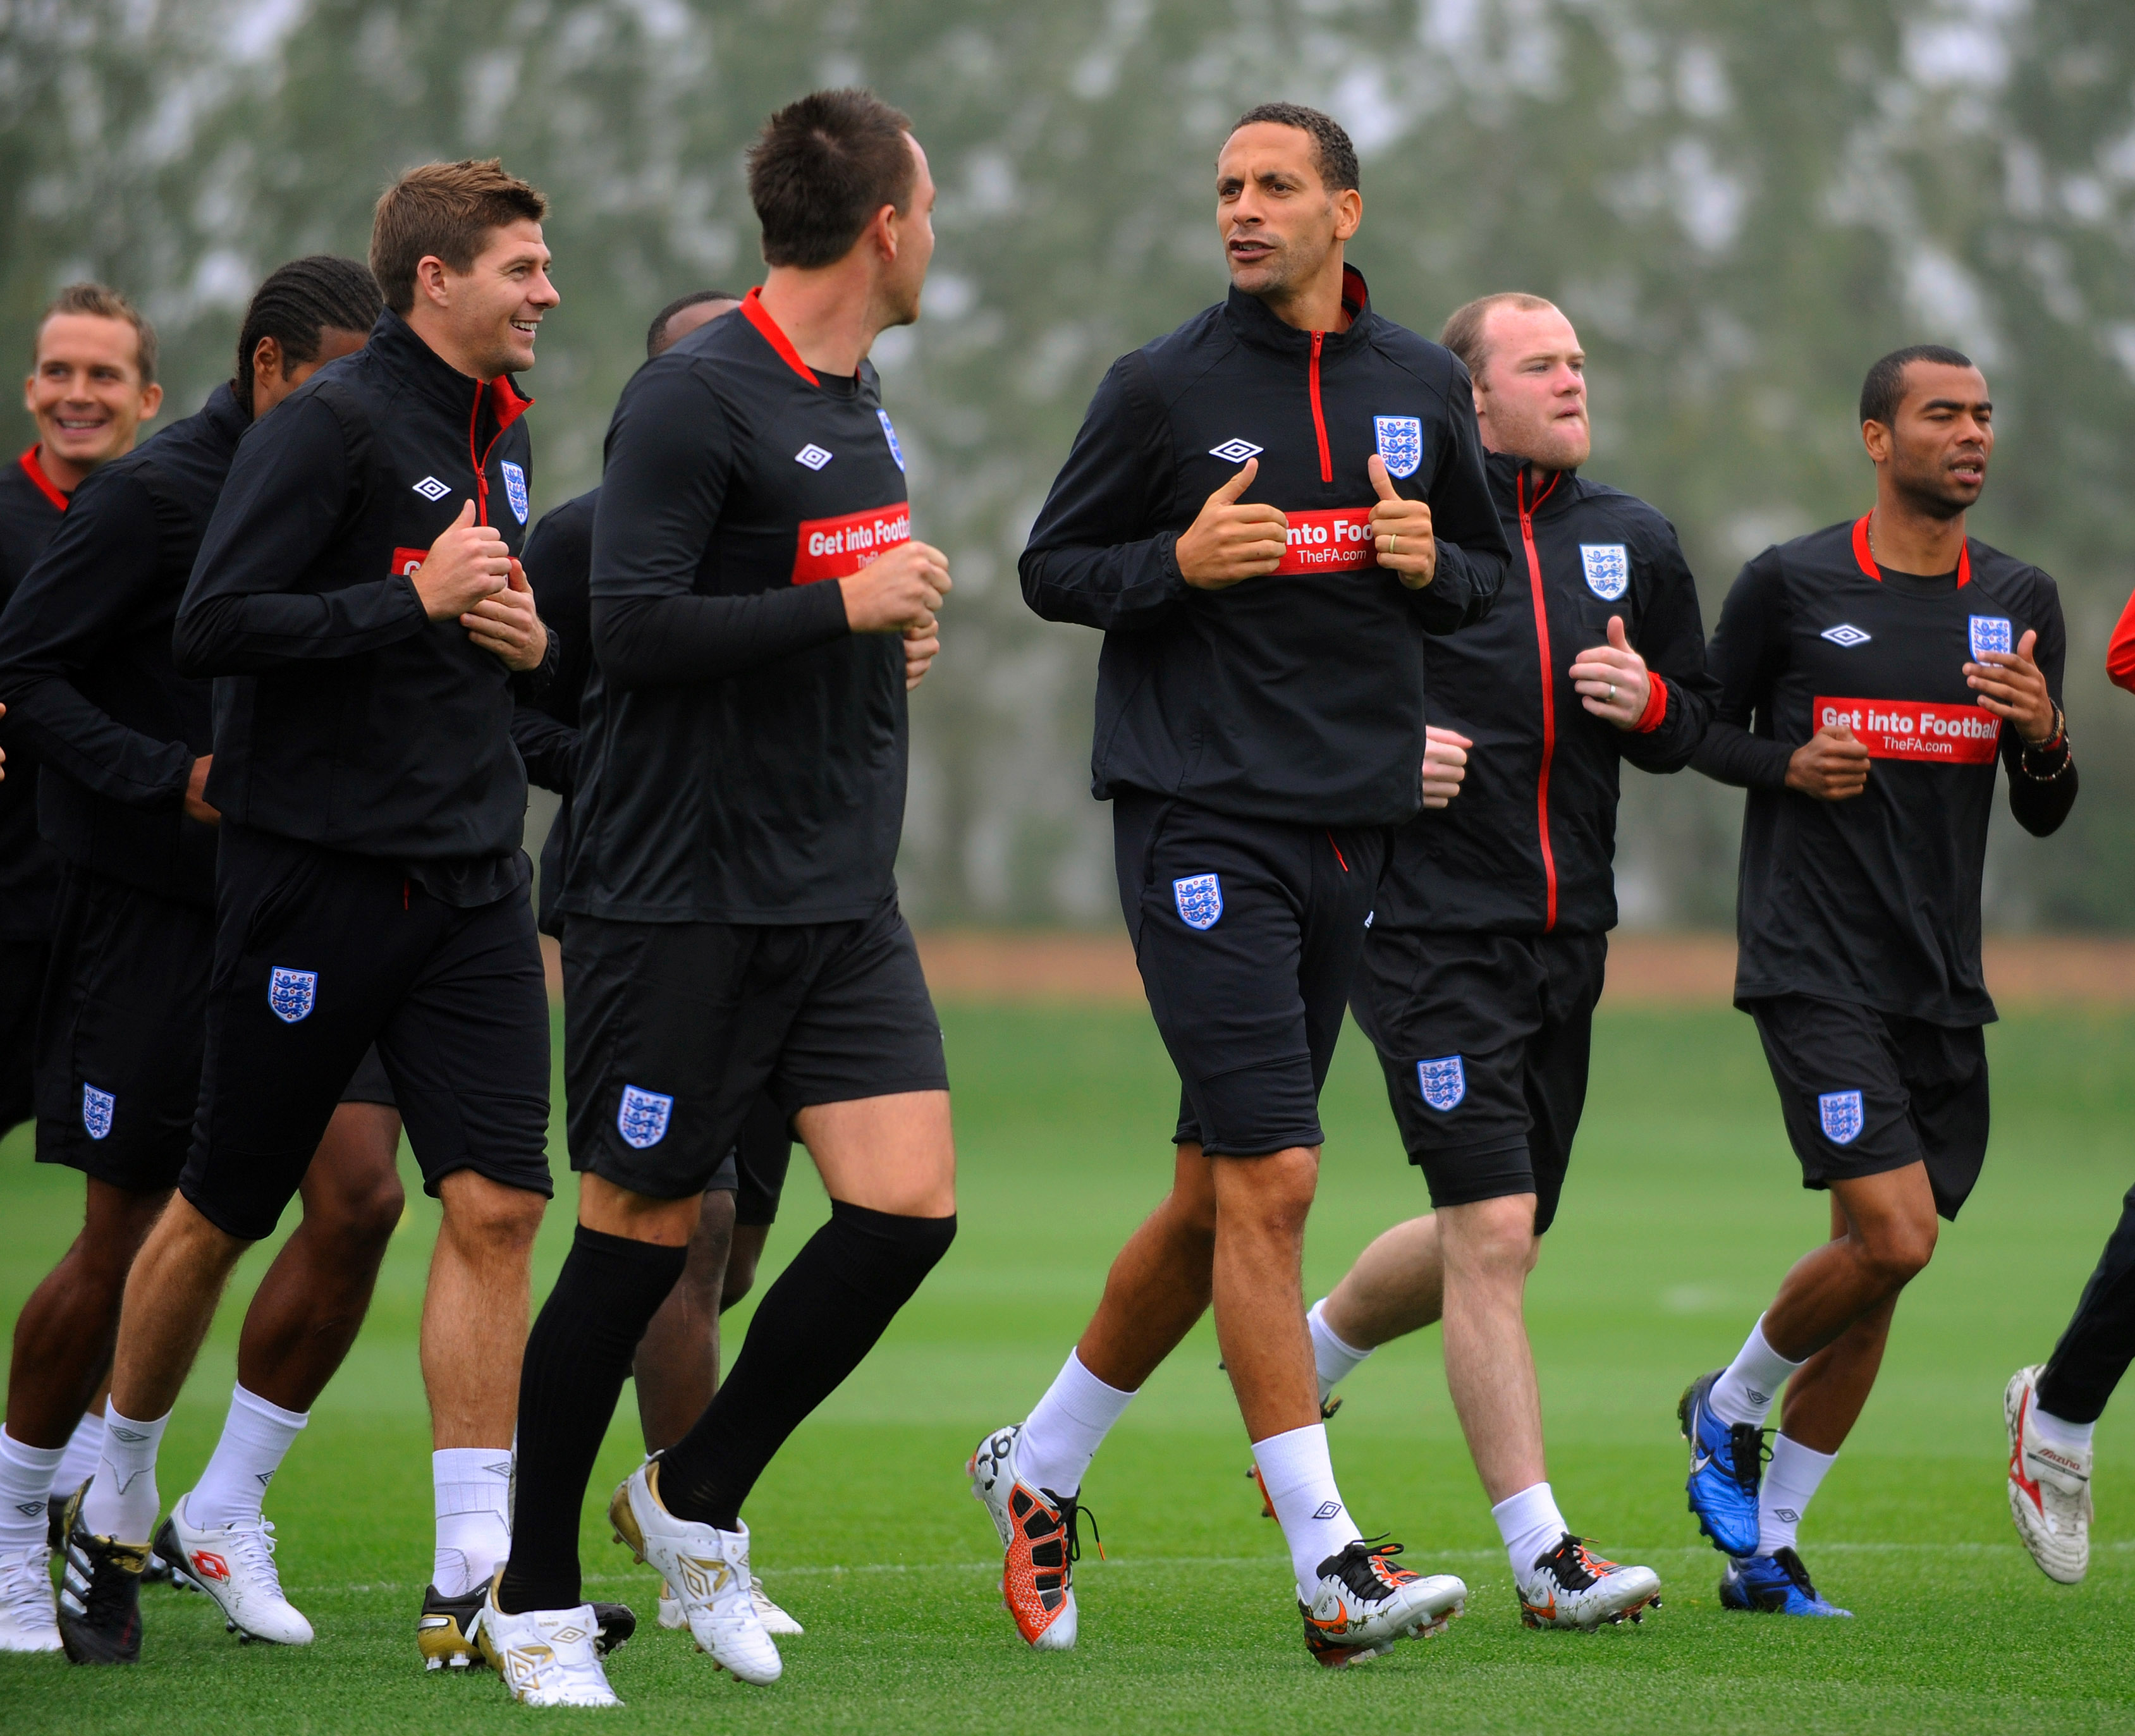 ST ALBANS, ENGLAND - OCTOBER 08:  John Terry, Rio Ferdinand, Steven Gerrard, Wayne Rooney and Ashley Cole warm up during the England training session at London Colney on October 8, 2010 in St Albans, England.  (Photo by Michael Regan/Getty Images)